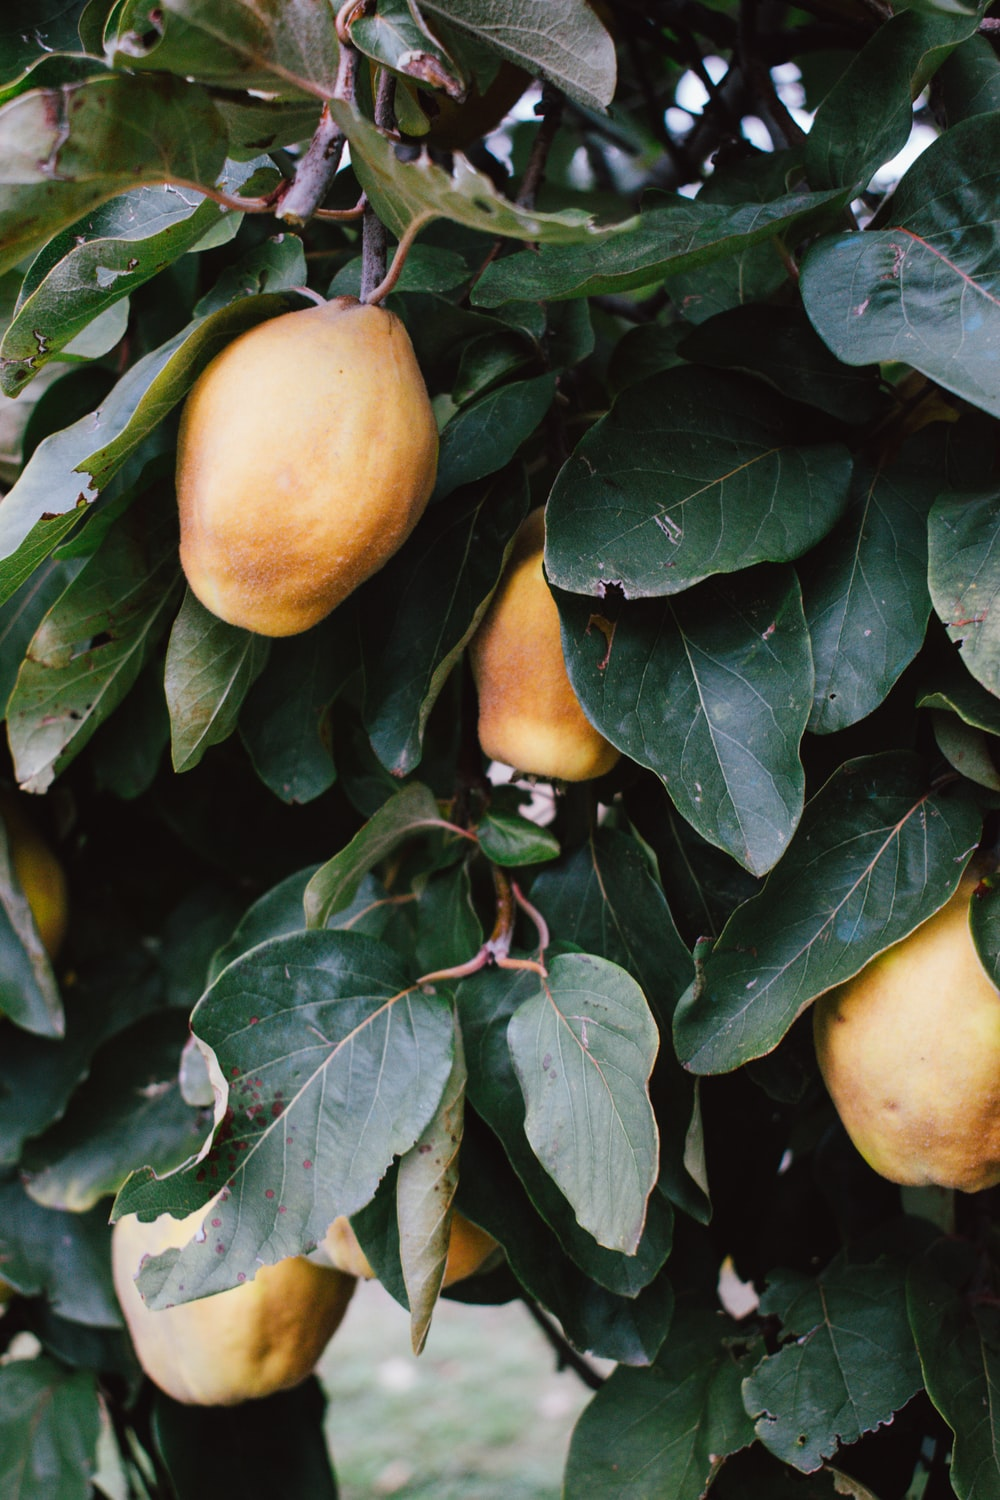 yellow fruit on green leaves